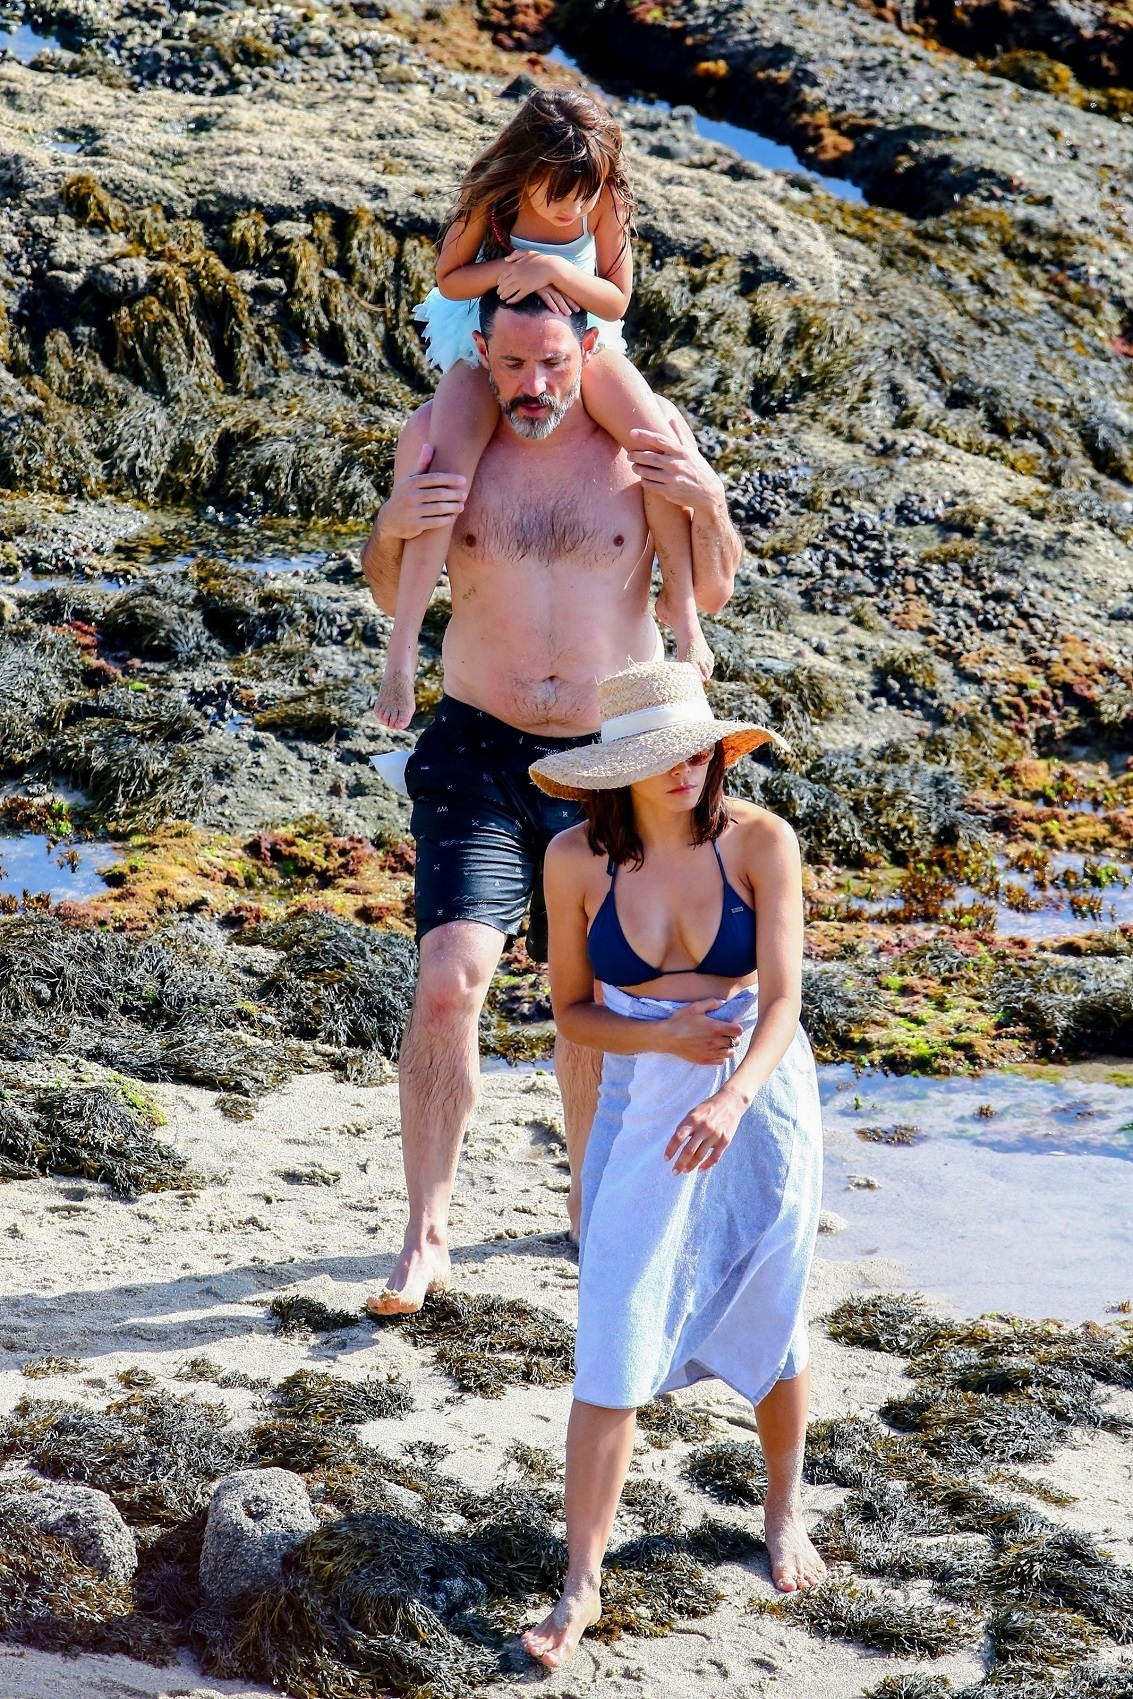 Los Angeles, CA  - *EXCLUSIVE*  - *Web Must Call For Pricing* Jenna Dewan kicks off her Labor Day weekend with a trip to a Los Angeles beach with her boyfriend Steve Kazee and daughter Everly Tatum. Jenna flaunts her toned figured in a navy blue bikini accessorized with a straw hat. *Shot on 08/30/19*  *UK Clients - Pictures Containing Children Please Pixelate Face Prior To Publication*, Image: 468261772, License: Rights-managed, Restrictions: , Model Release: no, Credit line: Profimedia, Backgrid USA